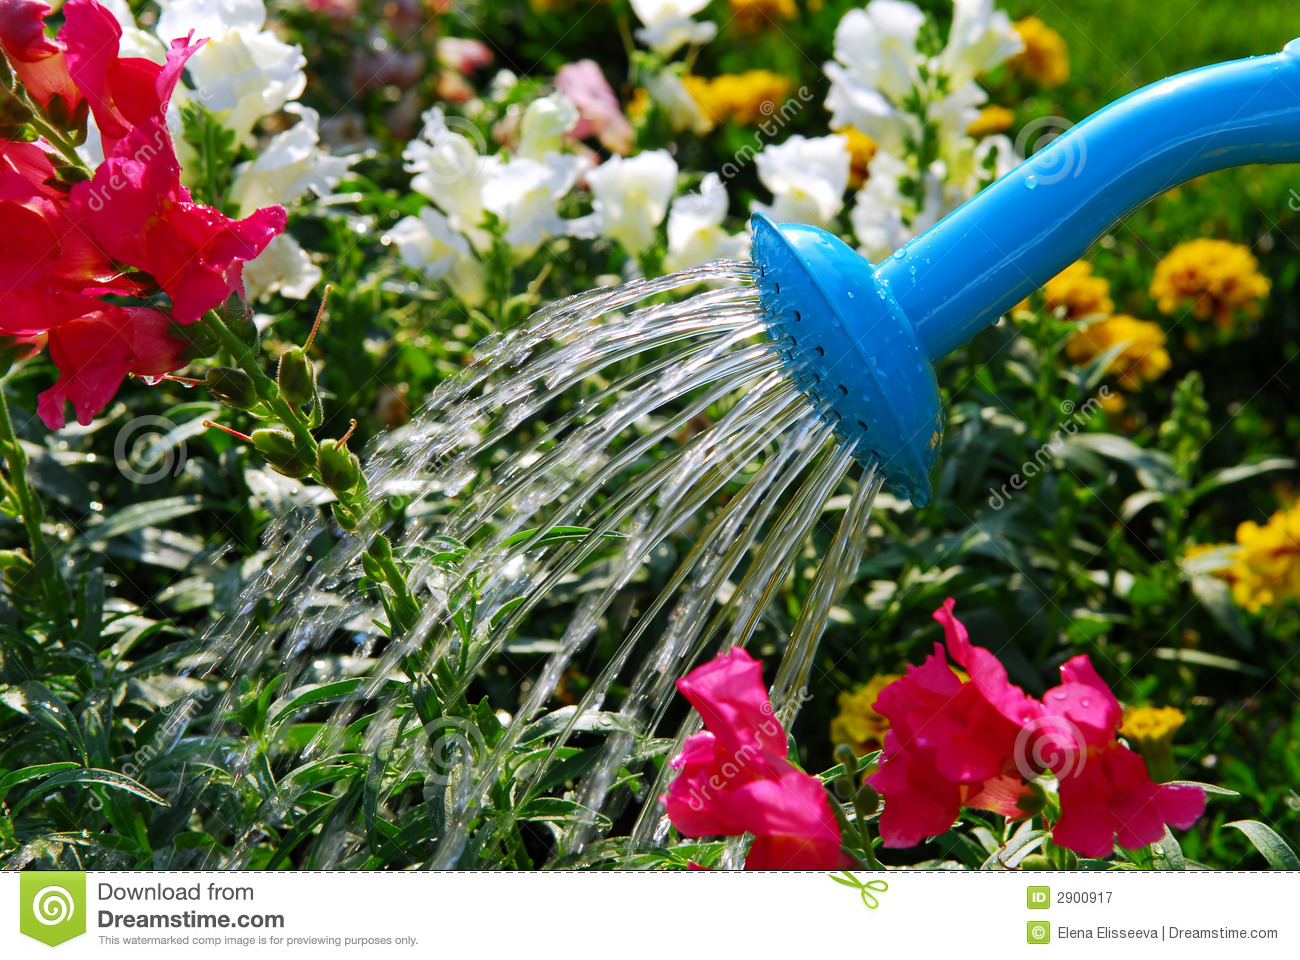 Watering Flowers Royalty Free Stock Photography - Image: 2900917